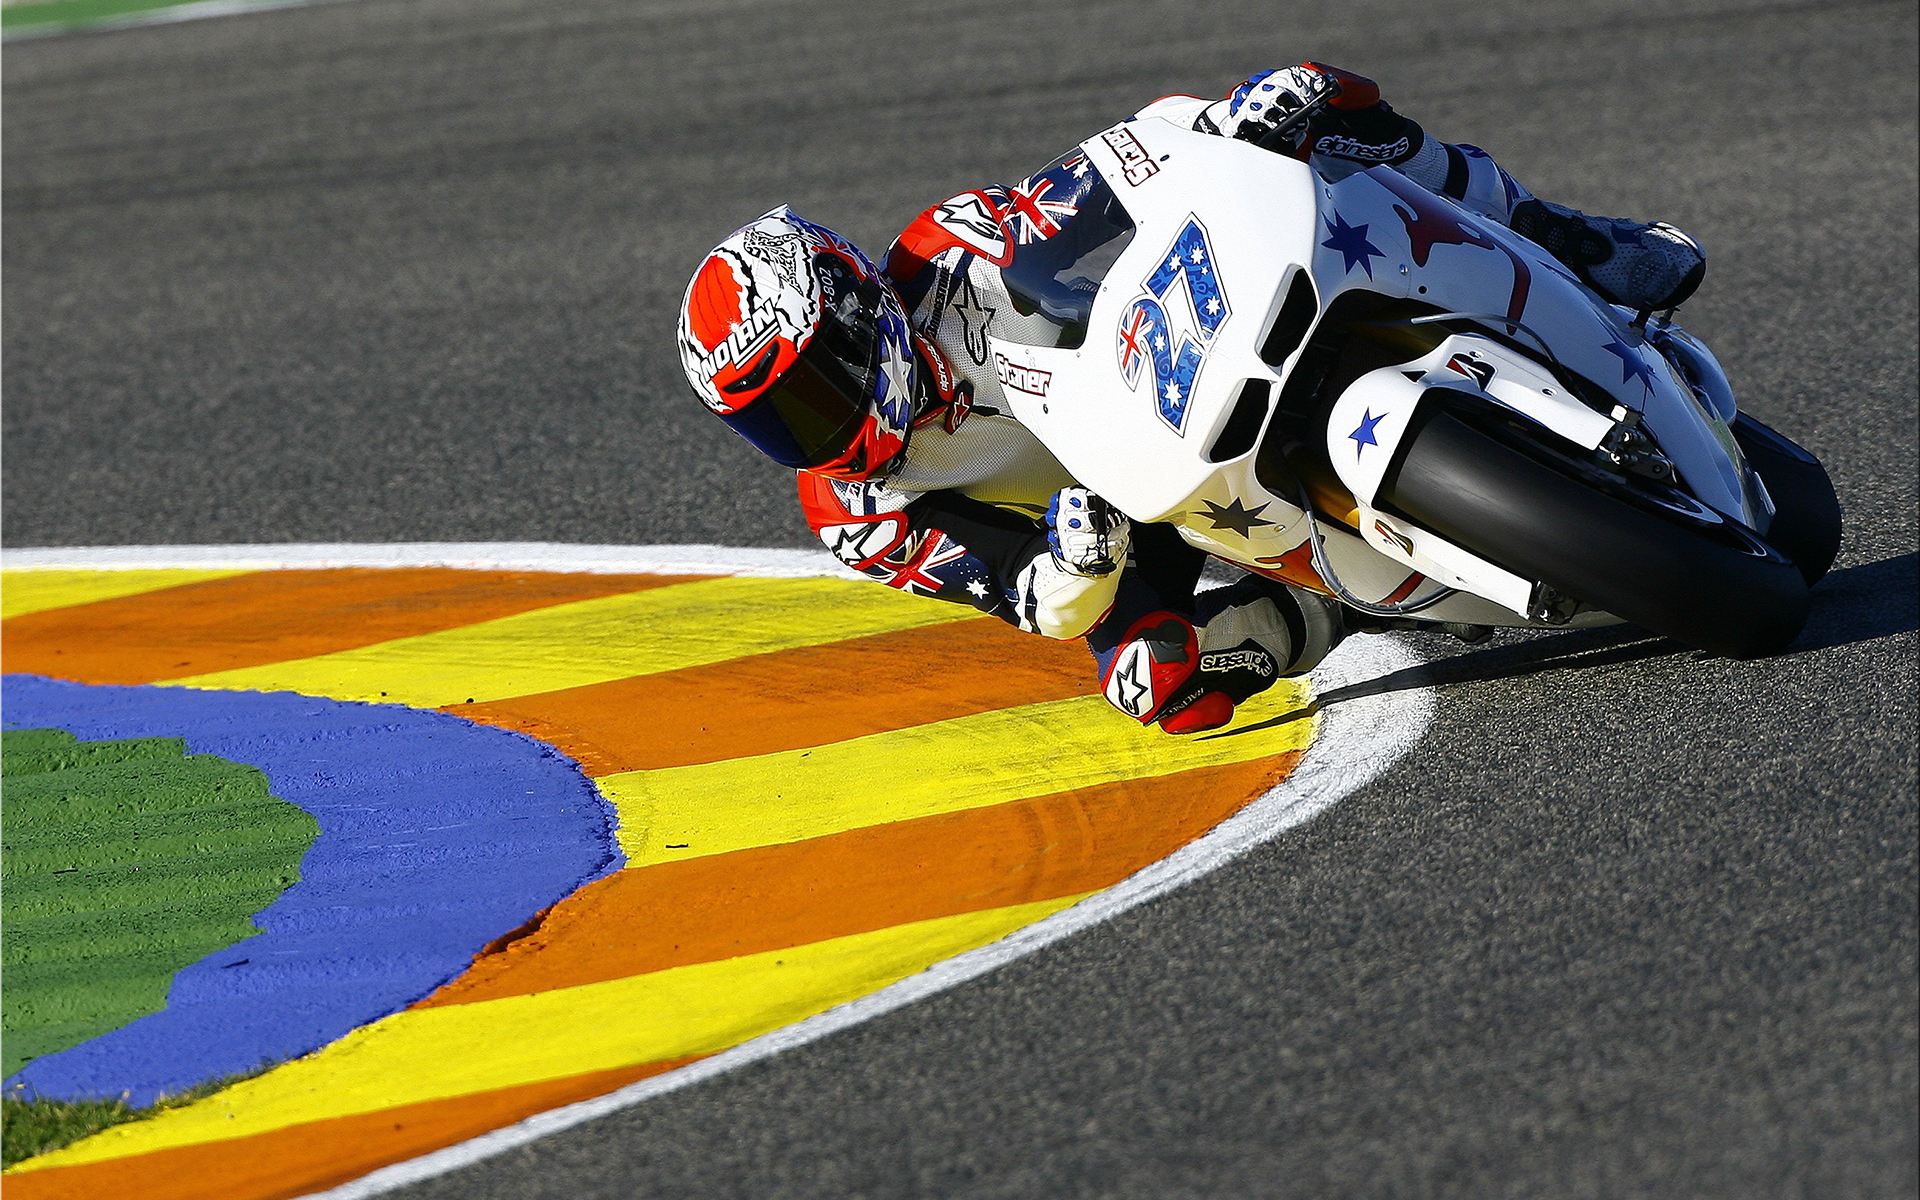 racing motorcycle wallpapers widescreen hd background sports 1920 backgrounds desktop wall computer 1200 preview abyss